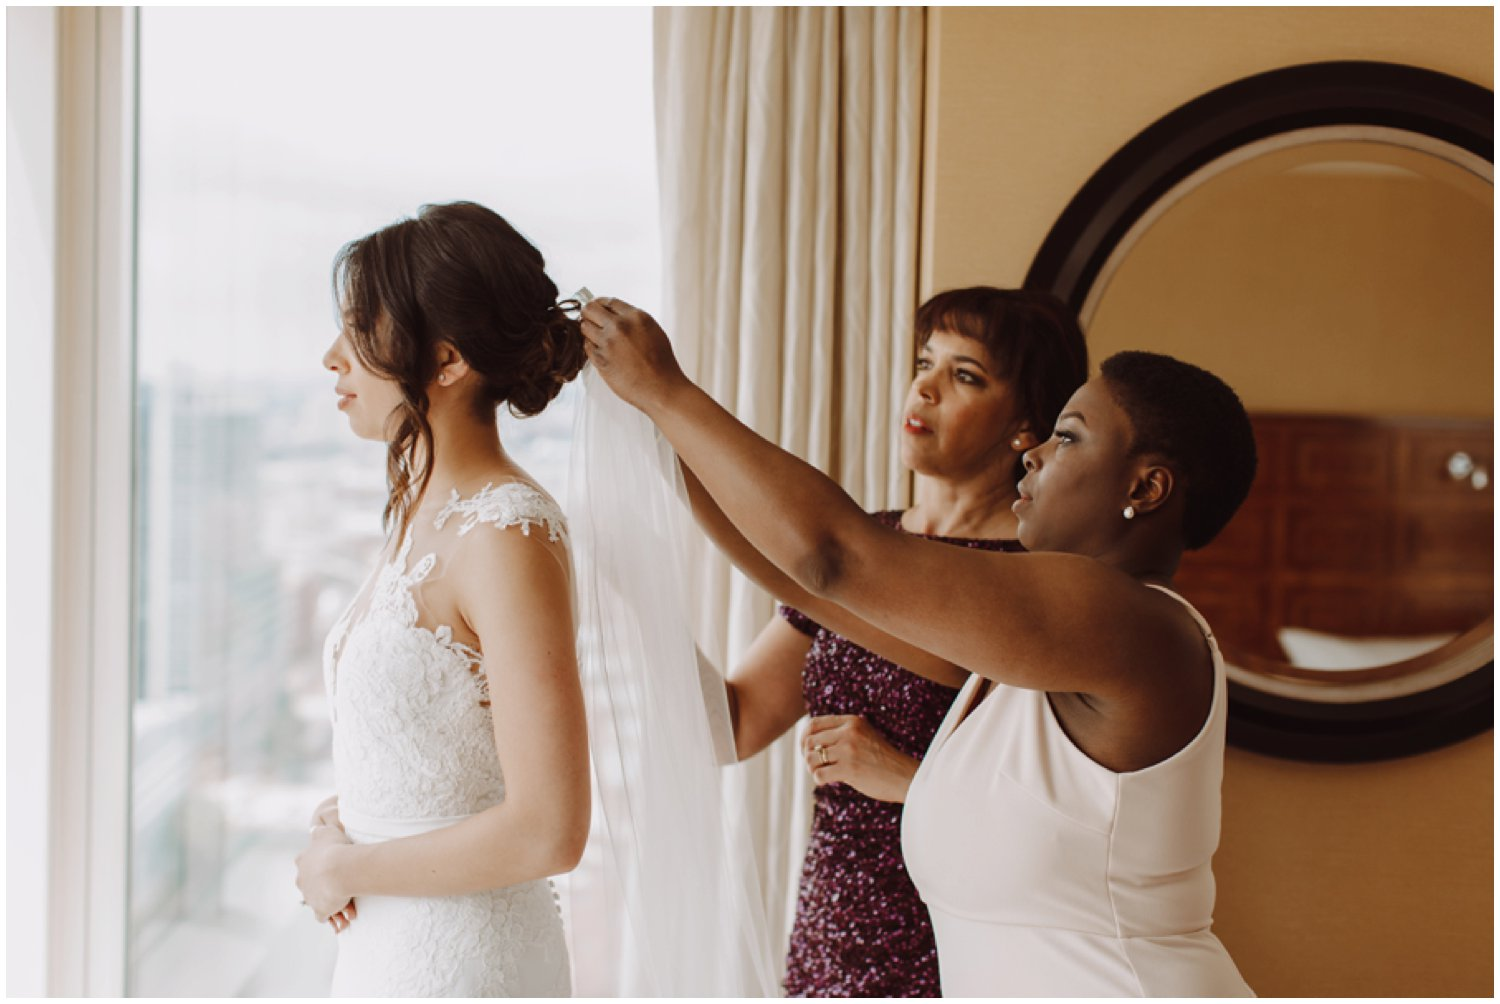 Baltimore wedding photographer | bridal getting ready portraits | Baltimore Maryland wedding